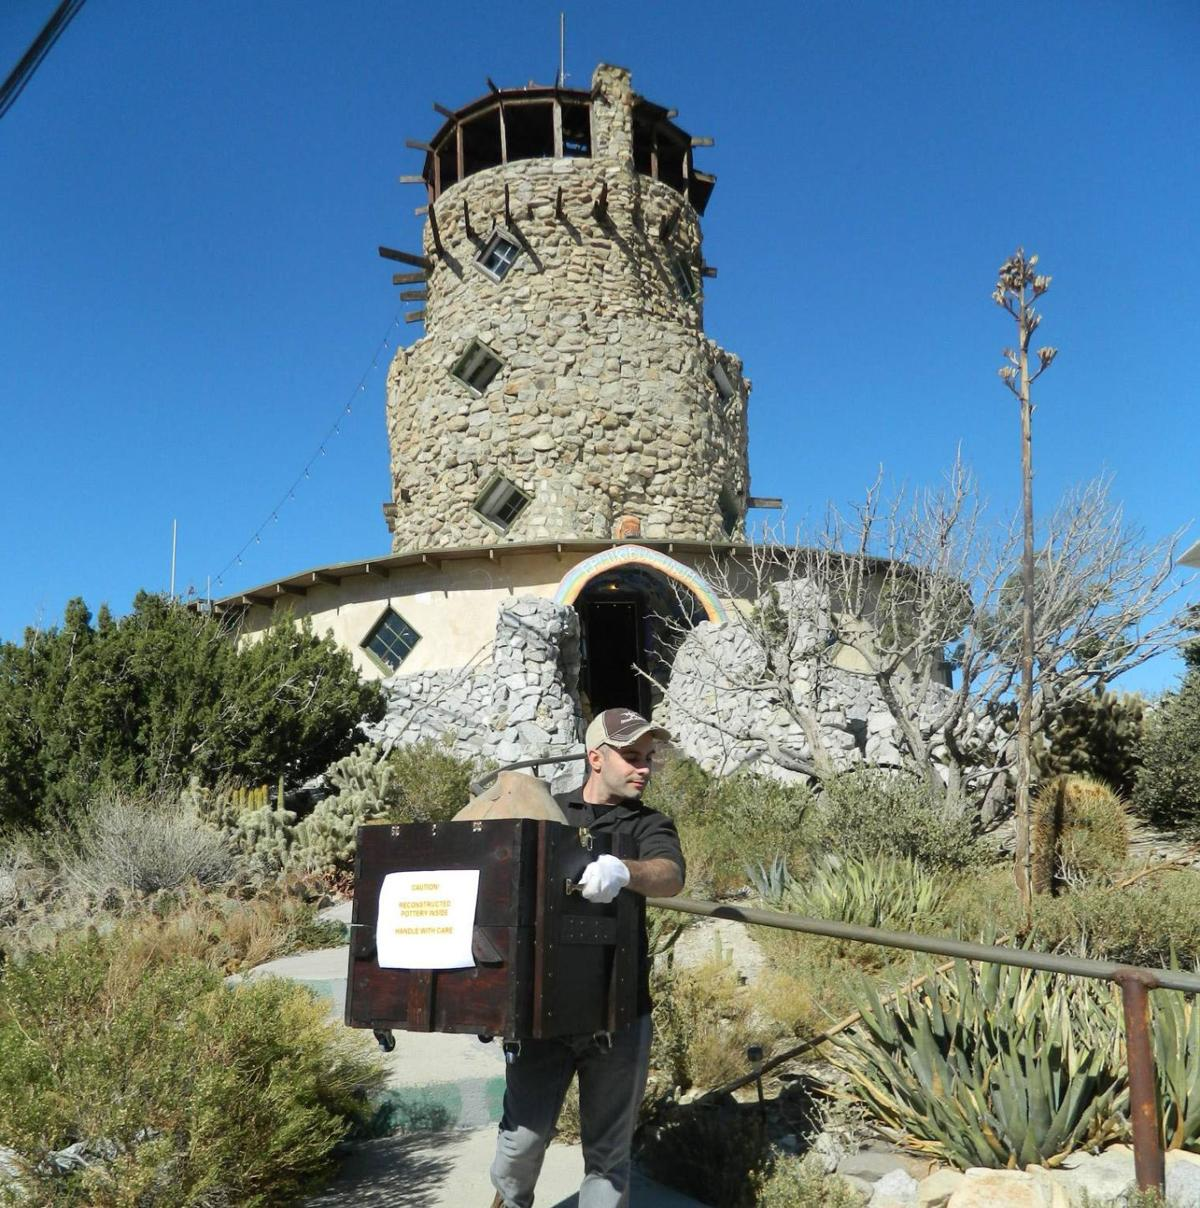 Dr. David Breeckner transporting artifacts from the Desert View Tower